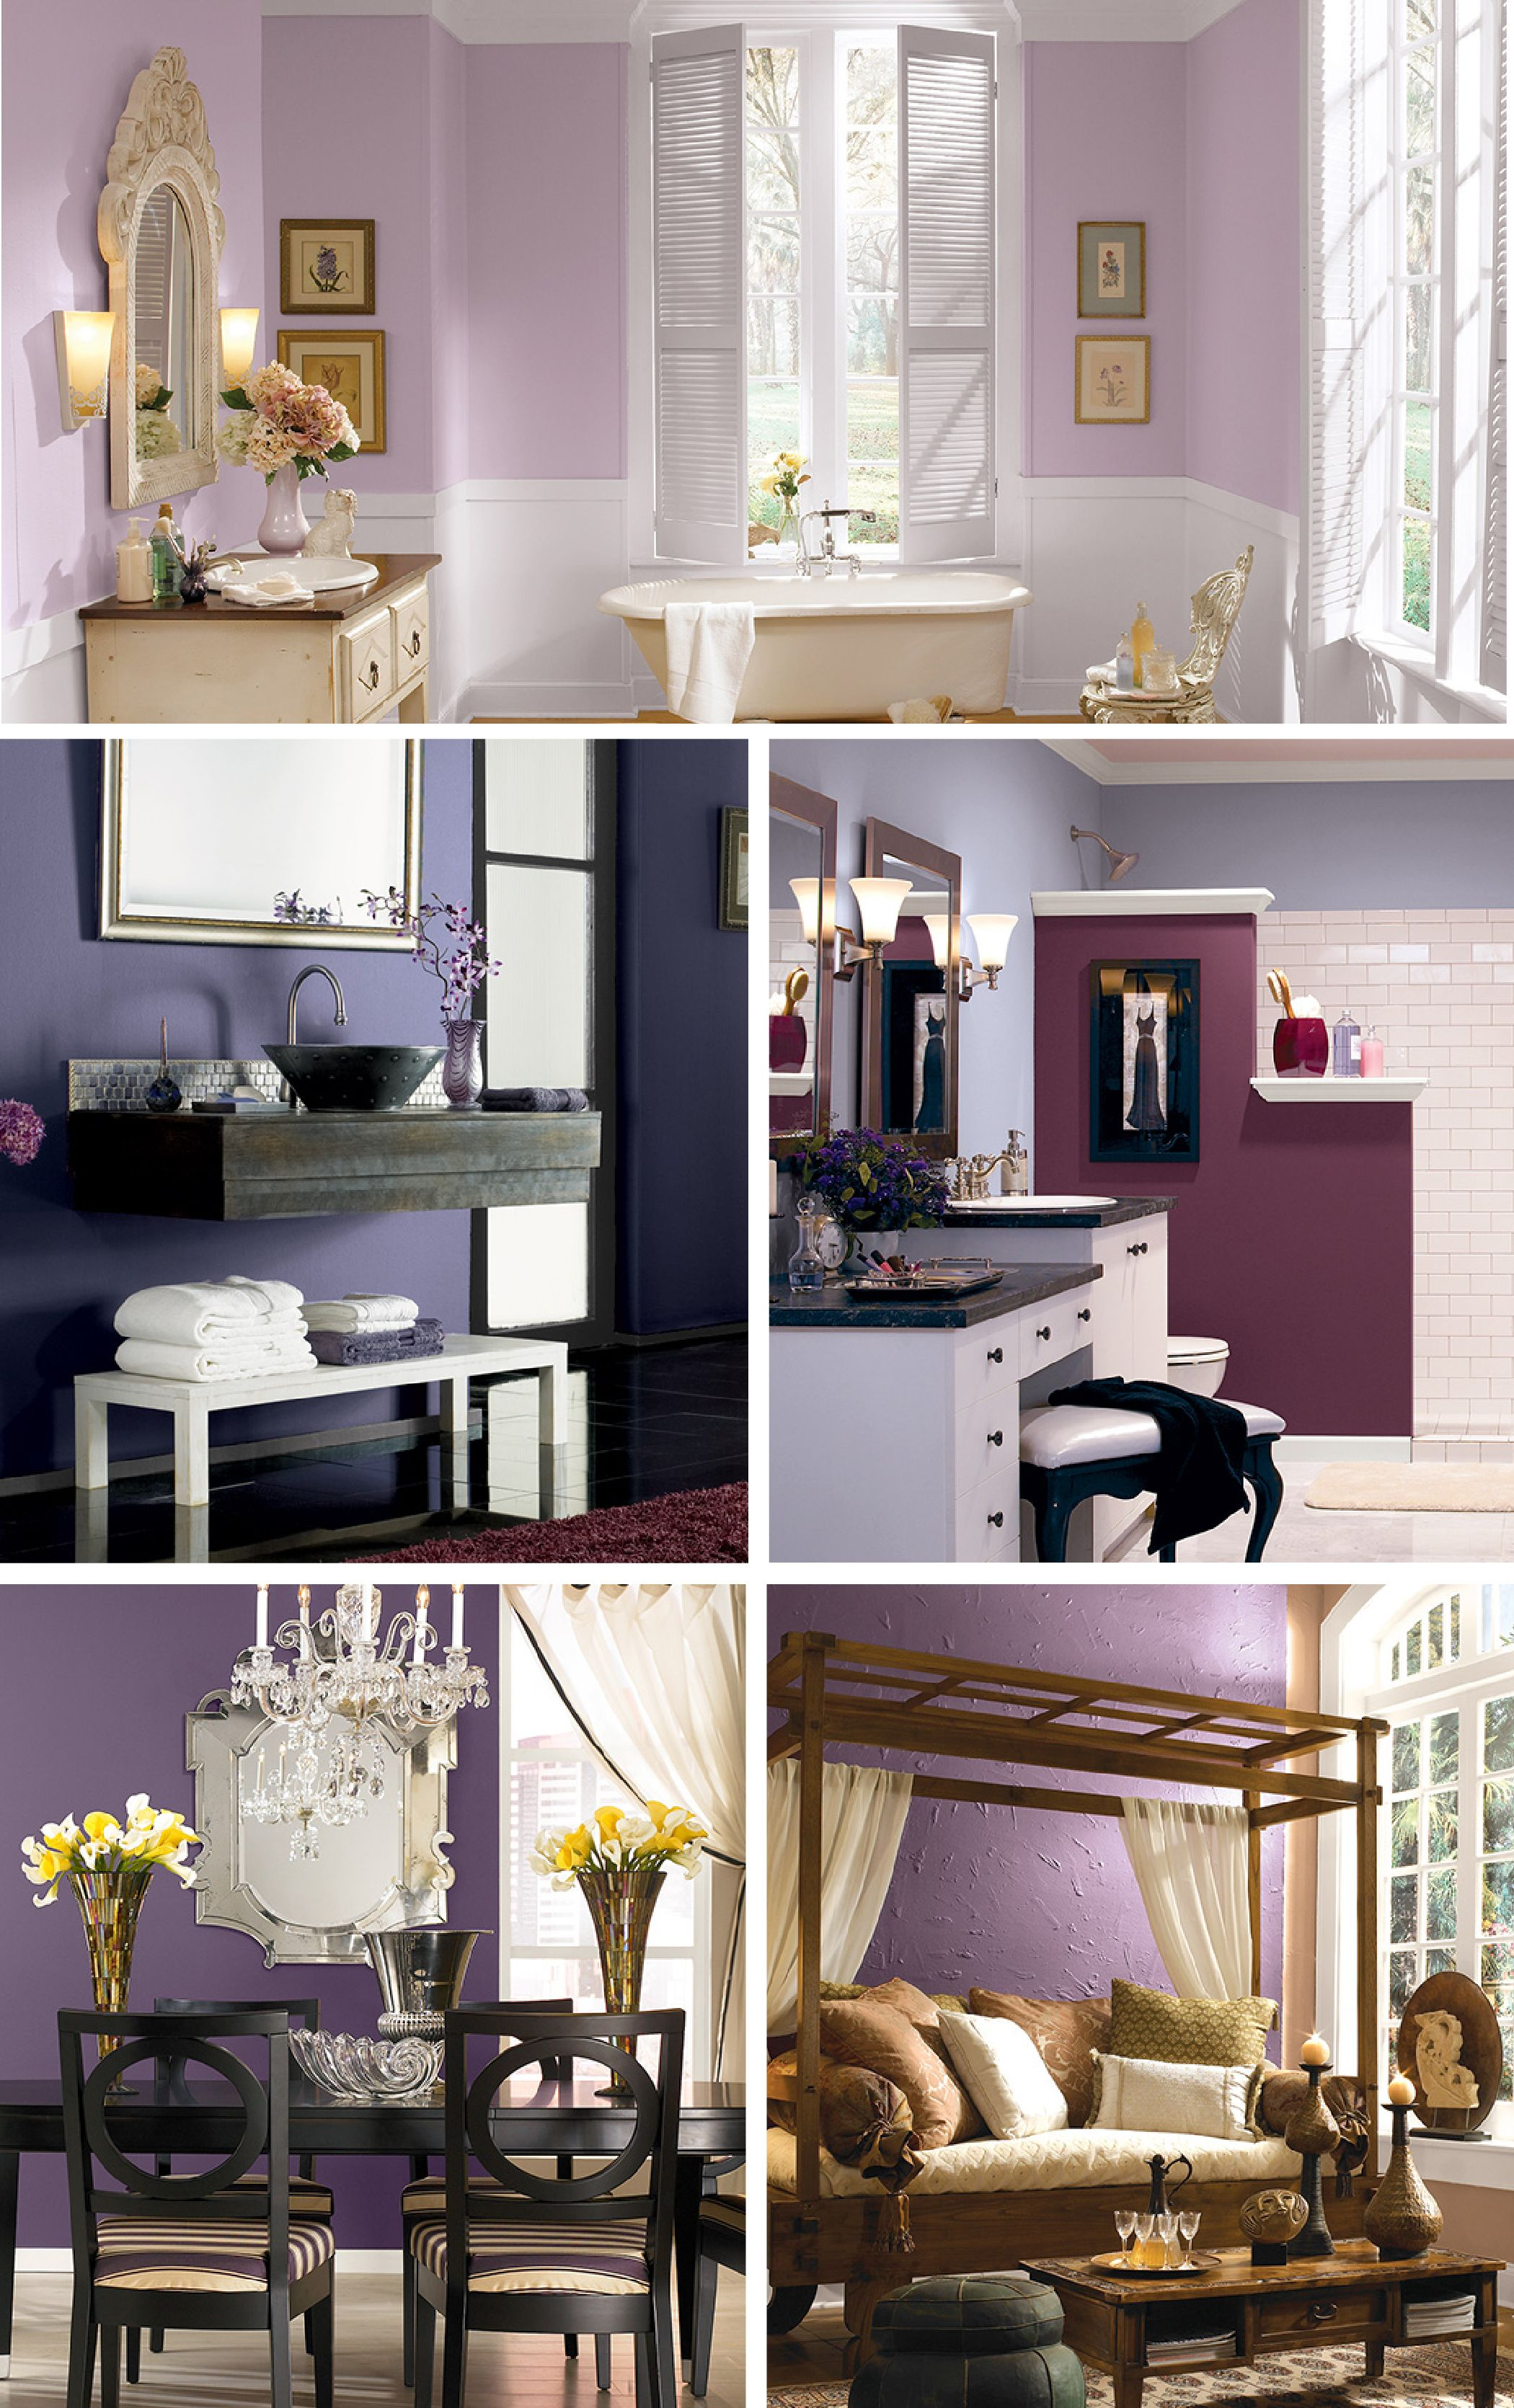 Behr paint has just the soothing hue of purple youve been looking for whether you choose to refresh the bathroom bedroom or home office